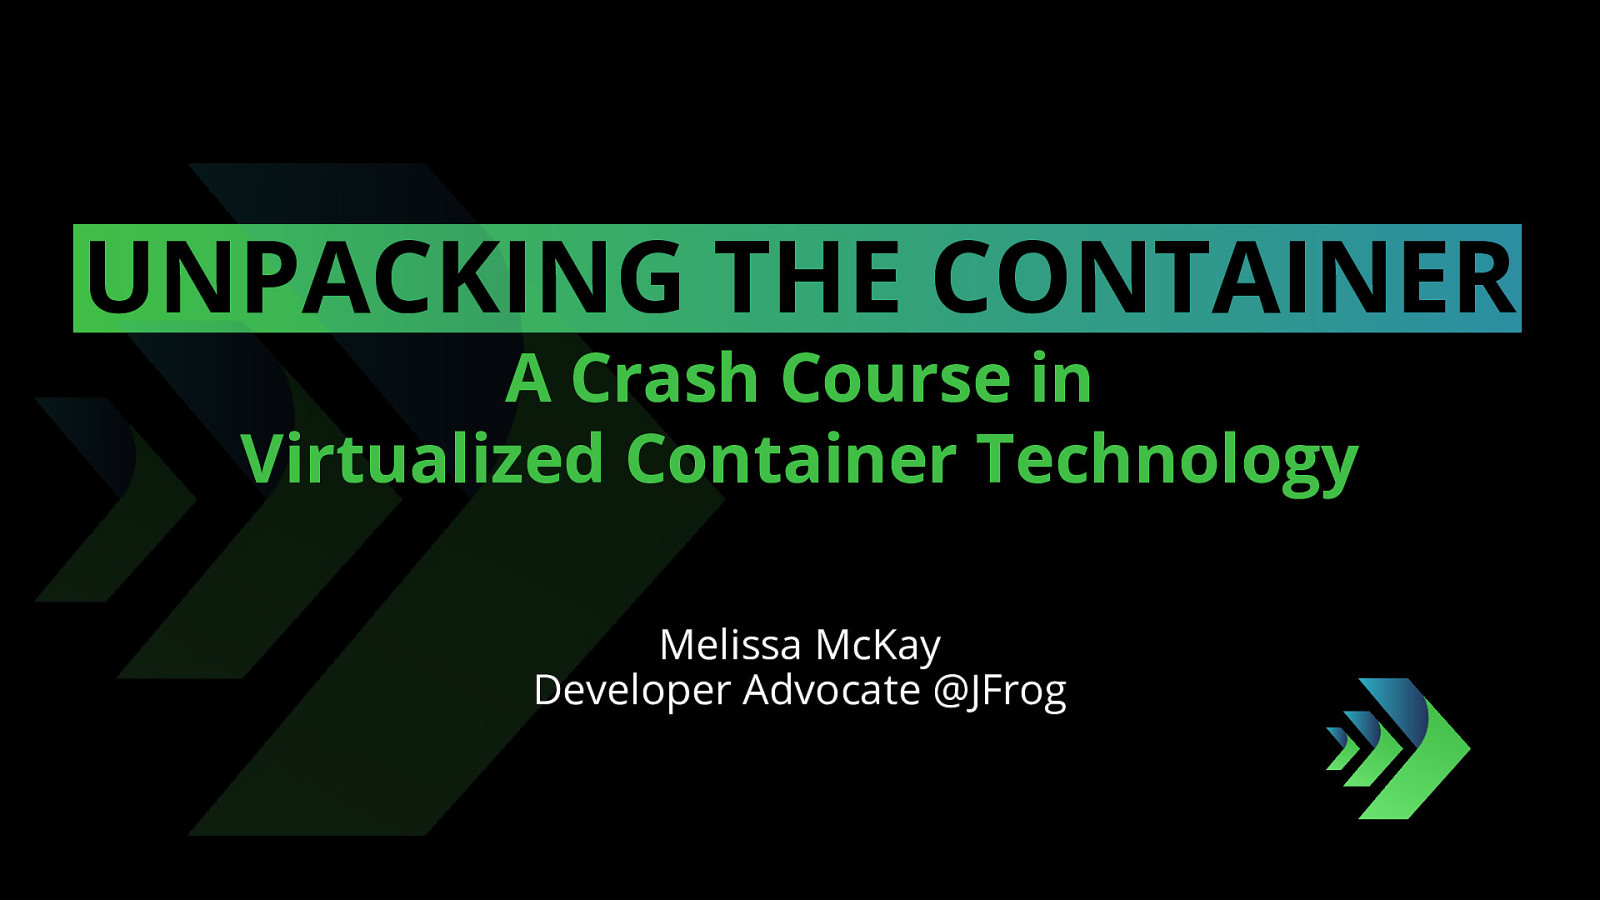 Unpacking the Container: A Crash Course in Virtualized Container Technology by Melissa McKay